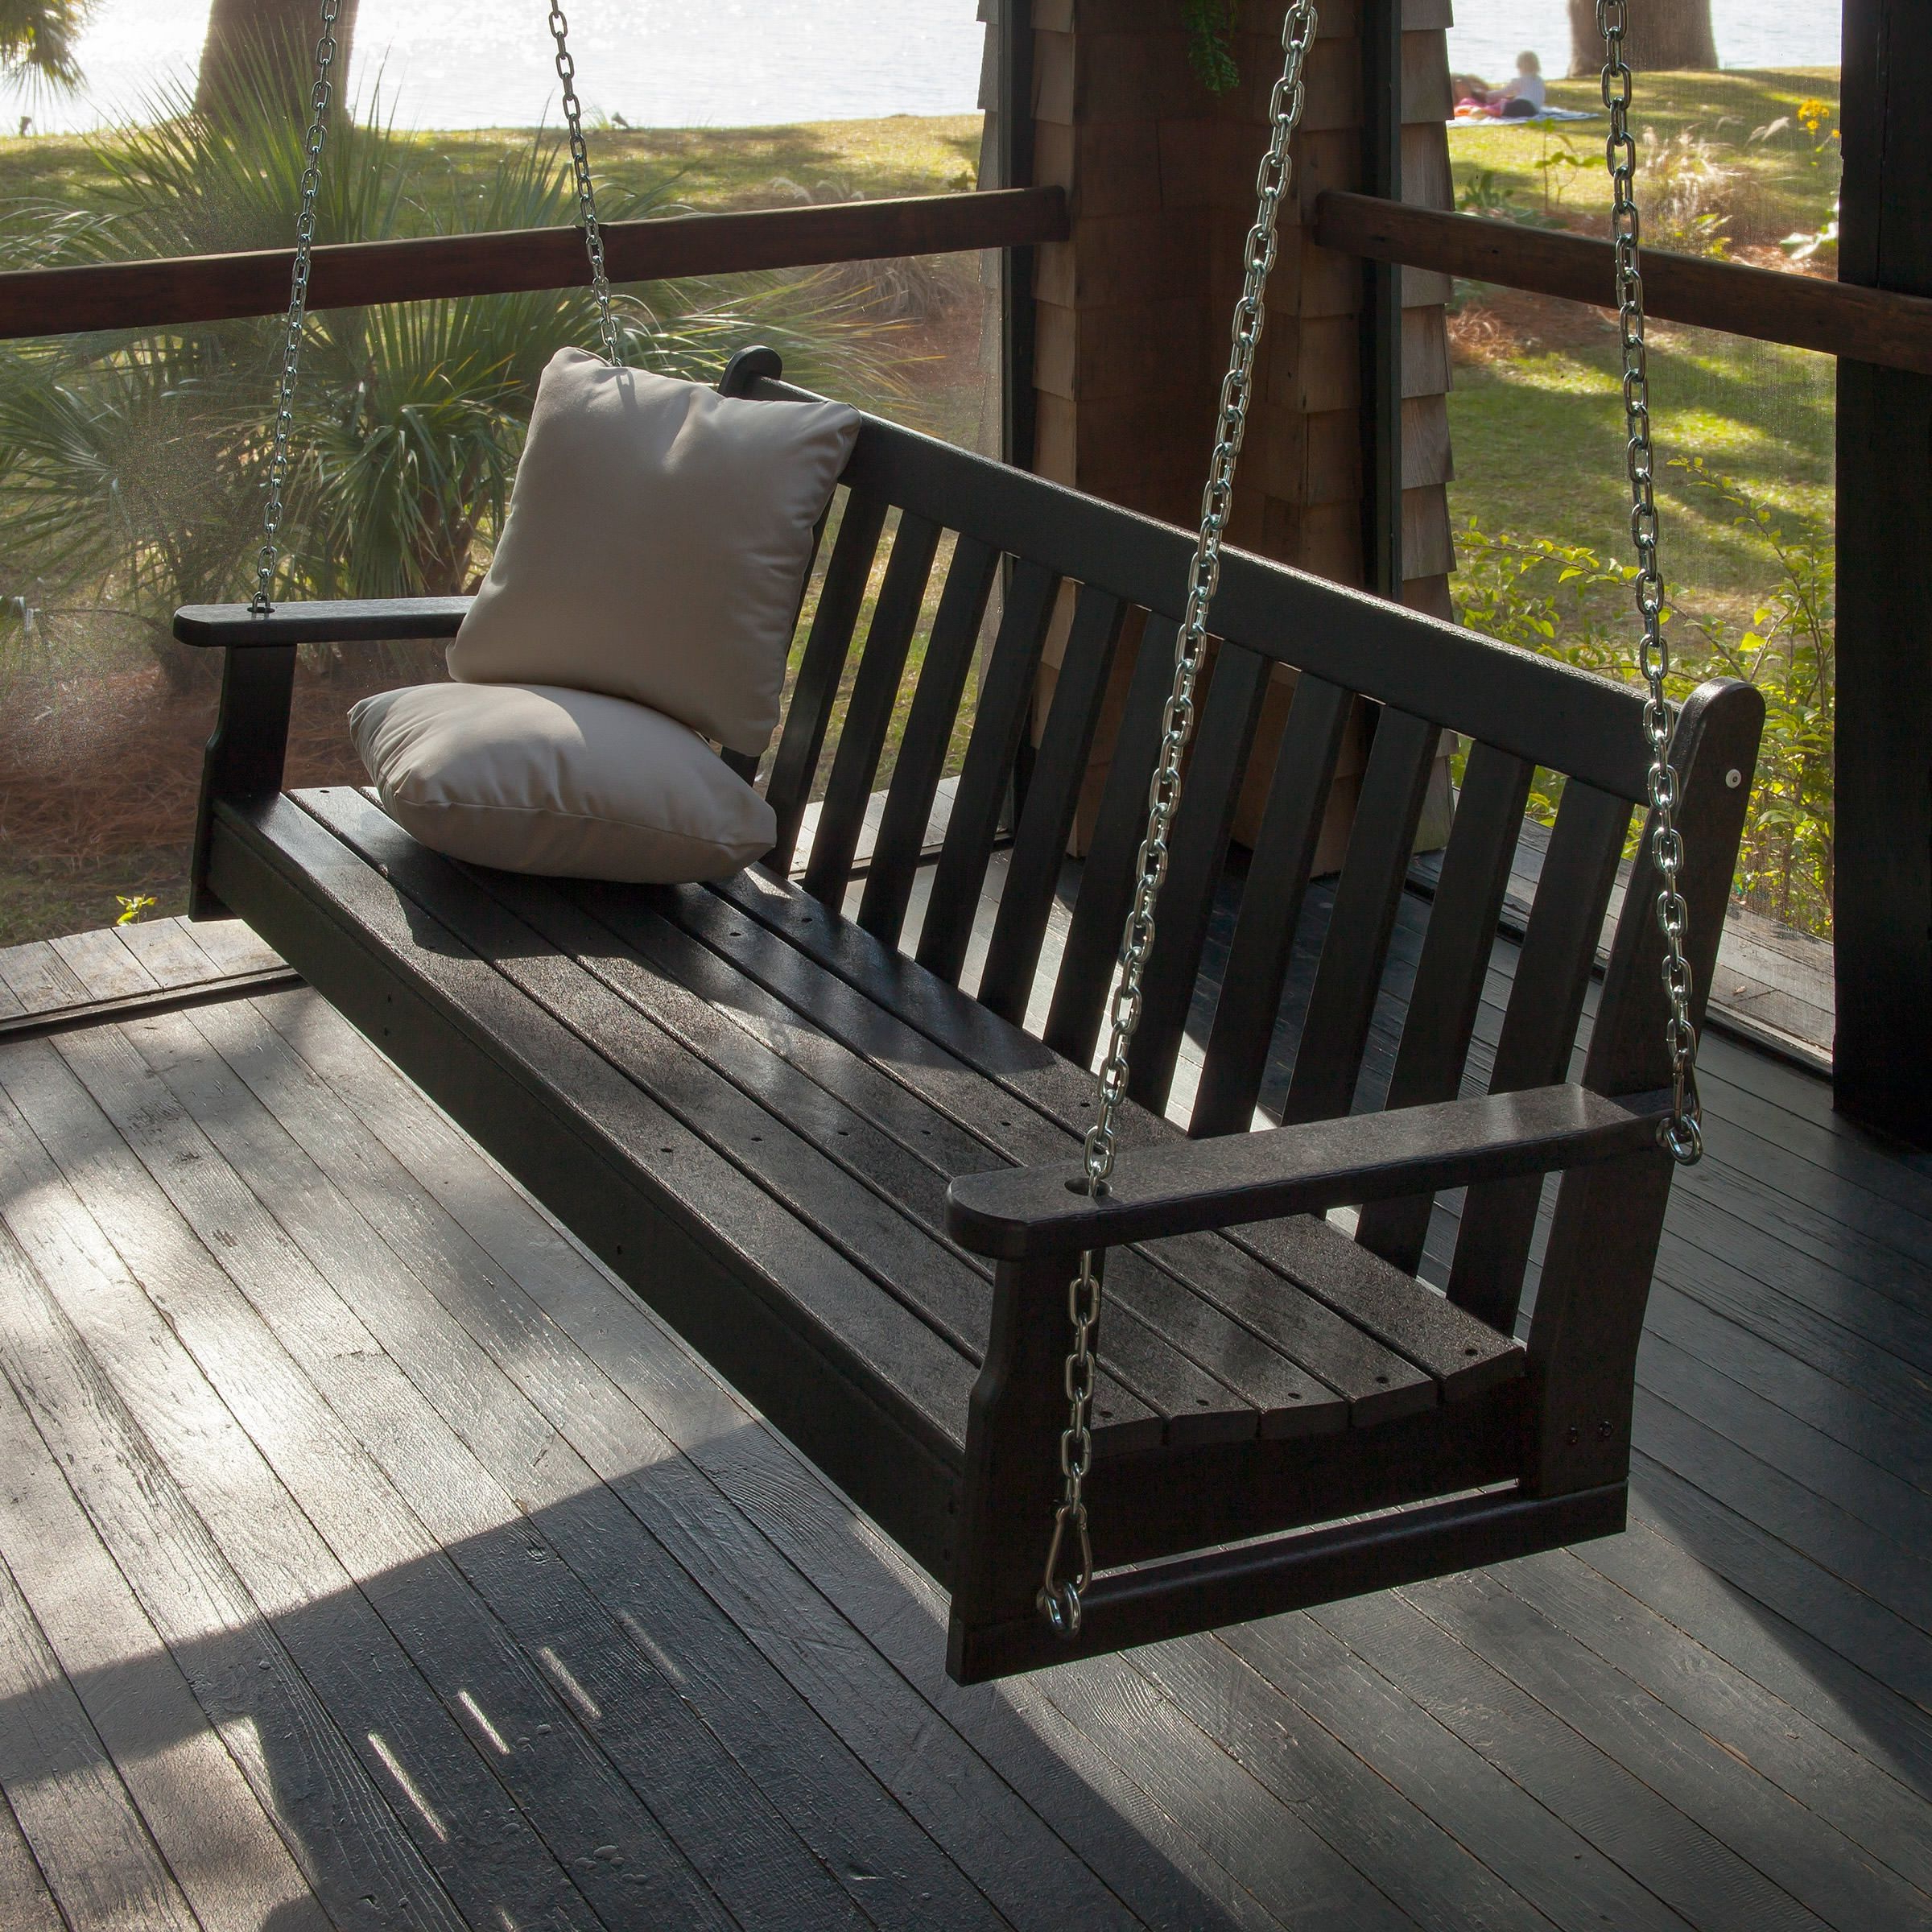 Popular Vineyard Porch Swings Intended For Polywood Vineyard 60 In Swing With Chain Kit In (View 11 of 25)